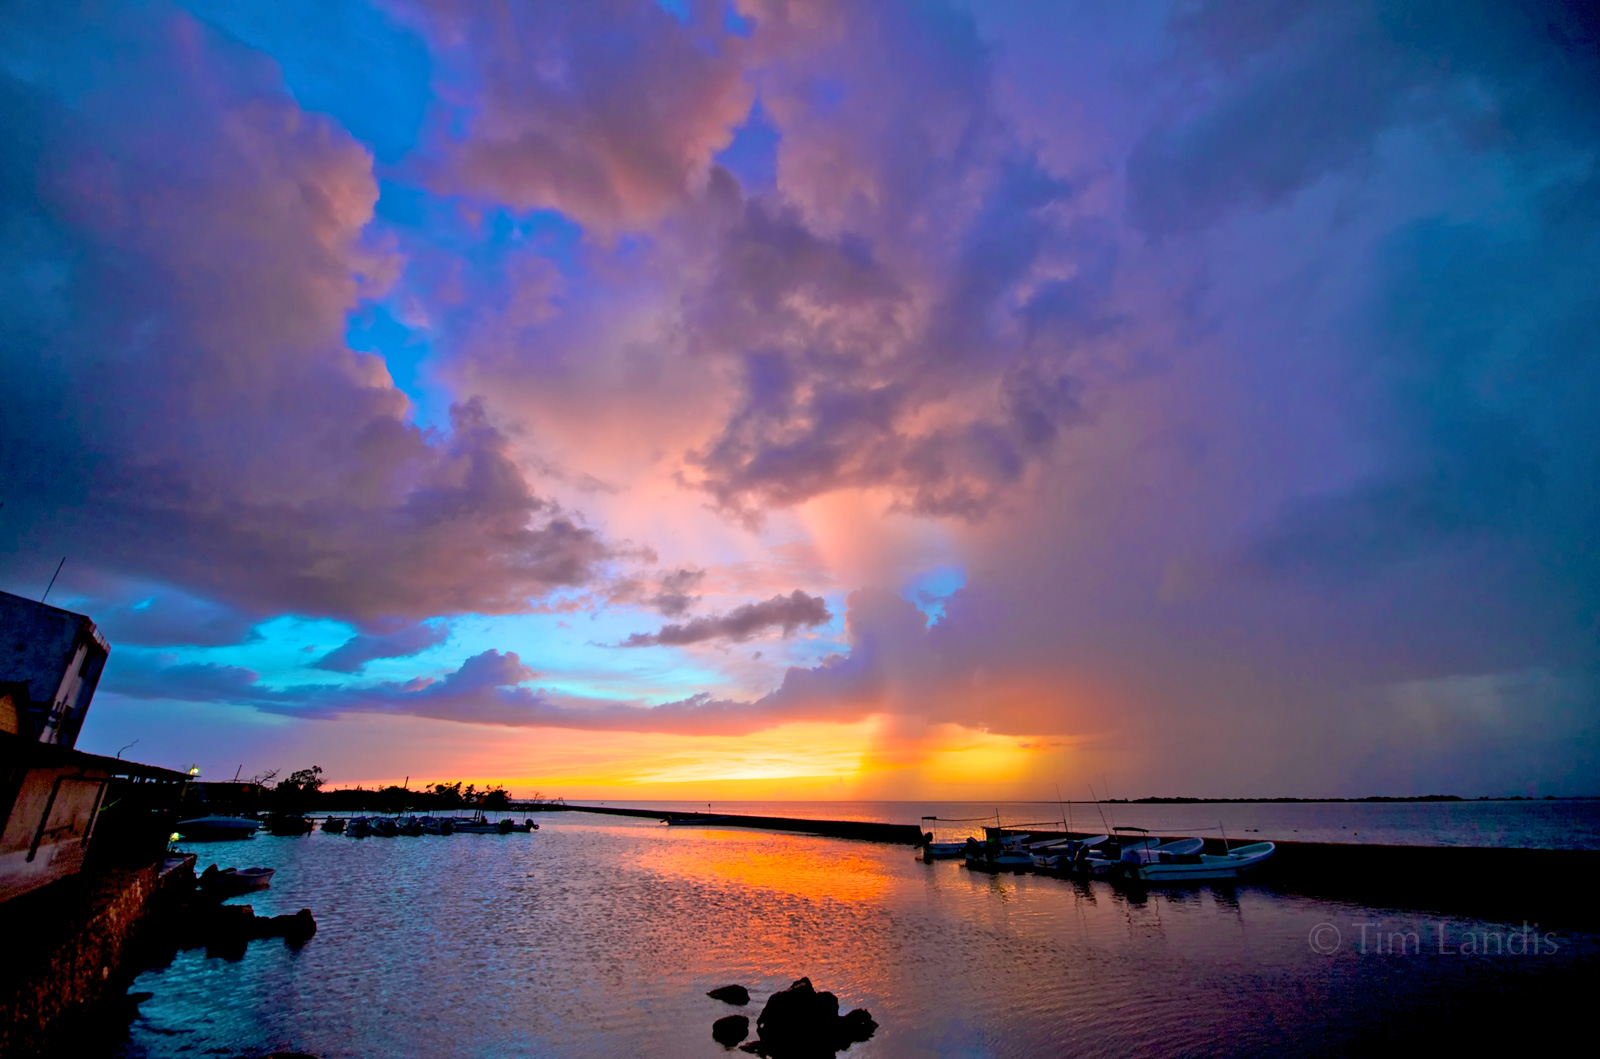 a storm approaches as the sunsets on a remote fishing village